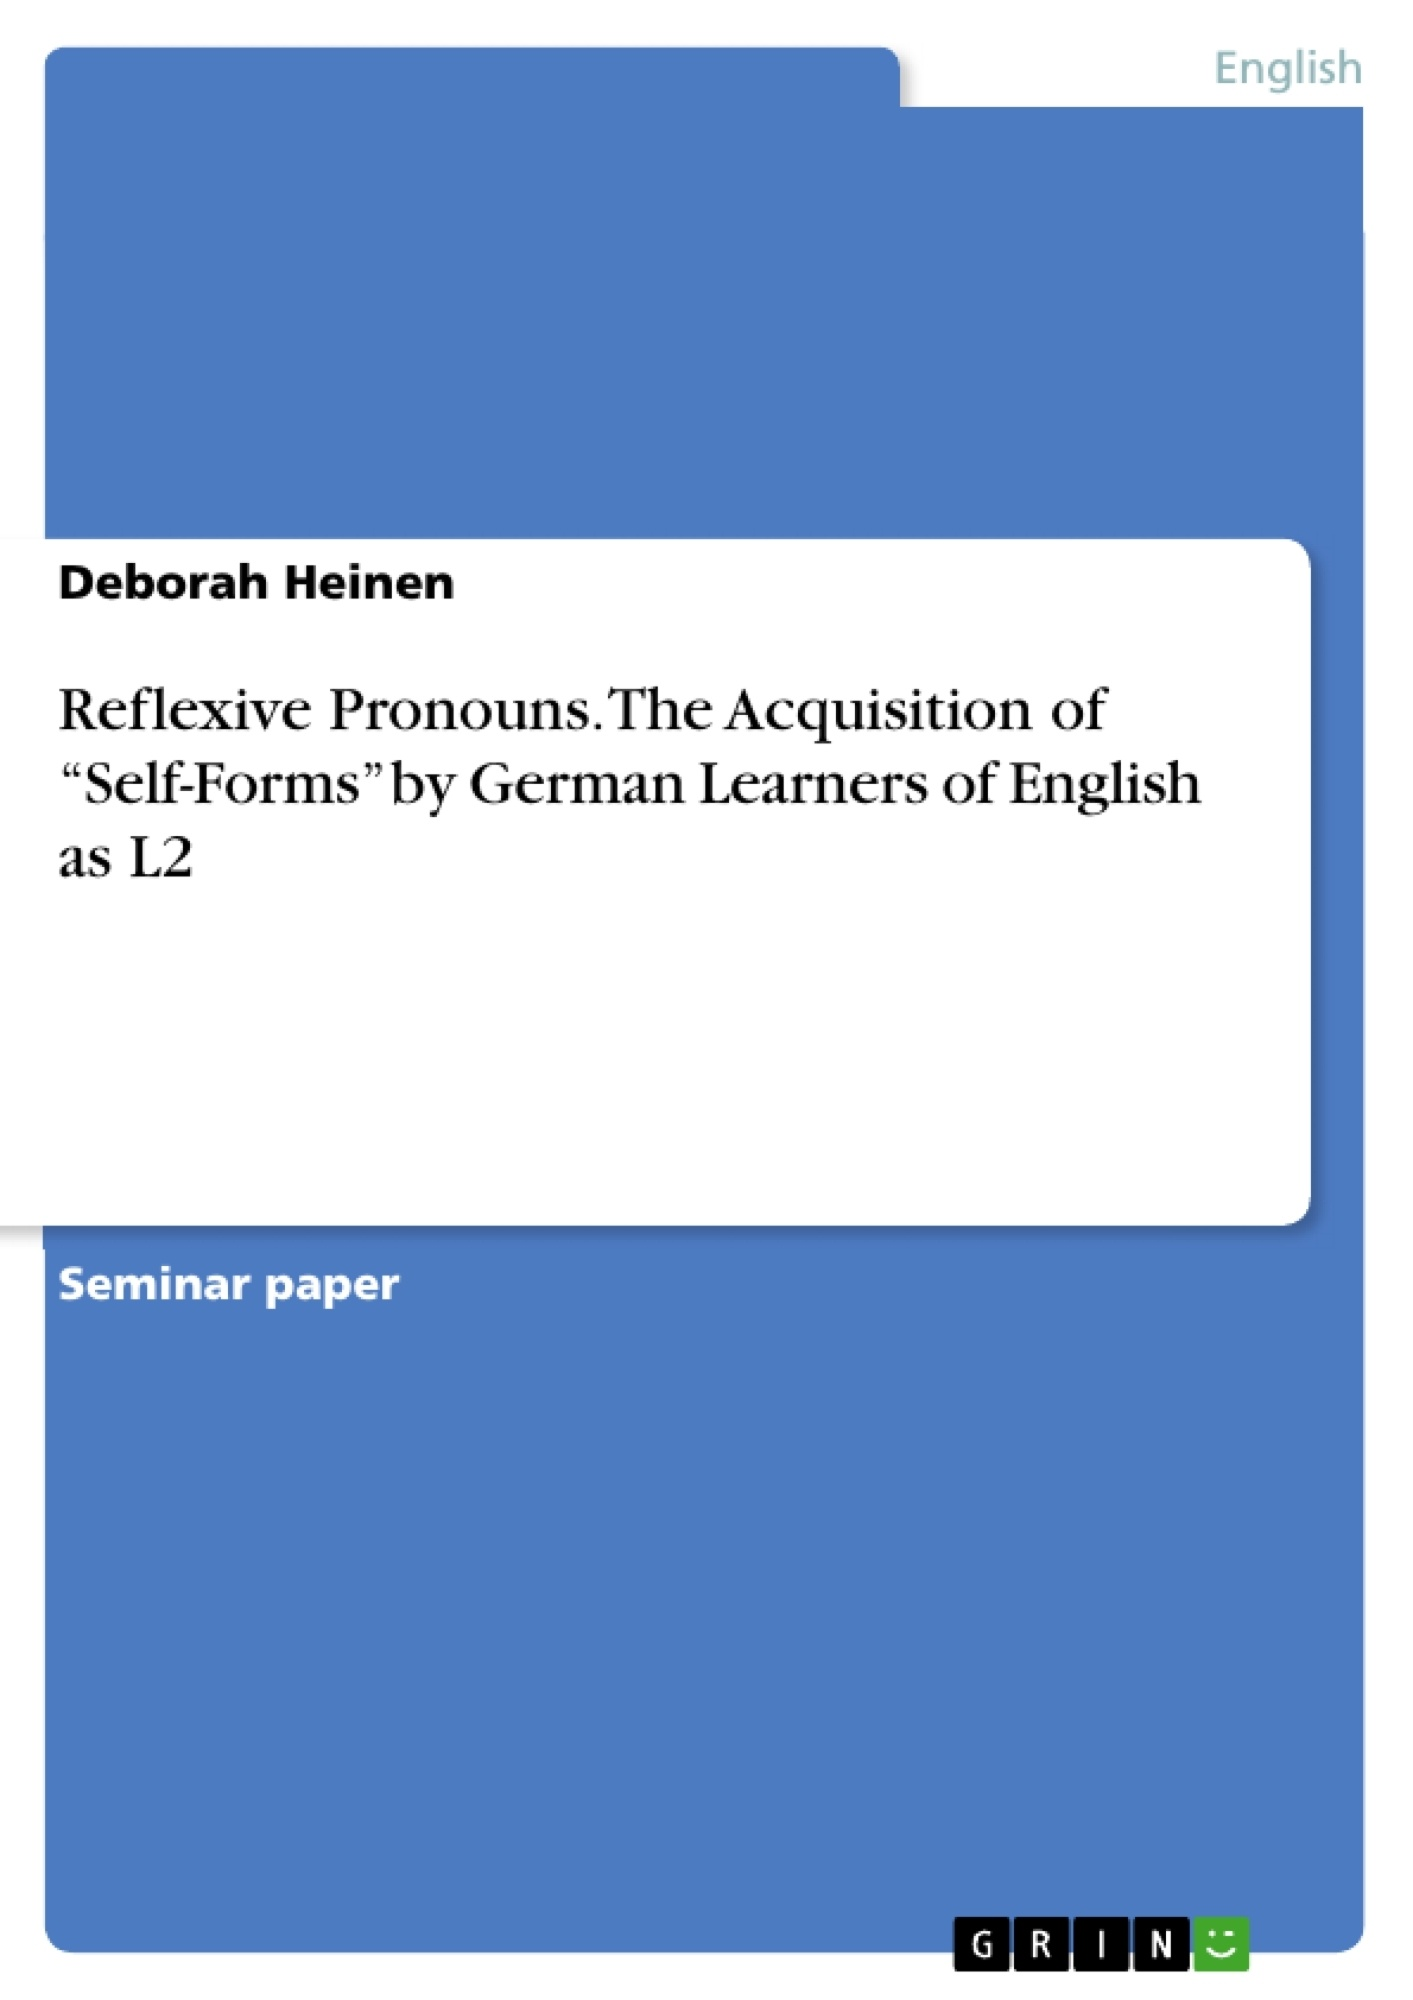 """Title: Reflexive Pronouns. The Acquisition of """"Self-Forms"""" by German Learners of English as L2"""